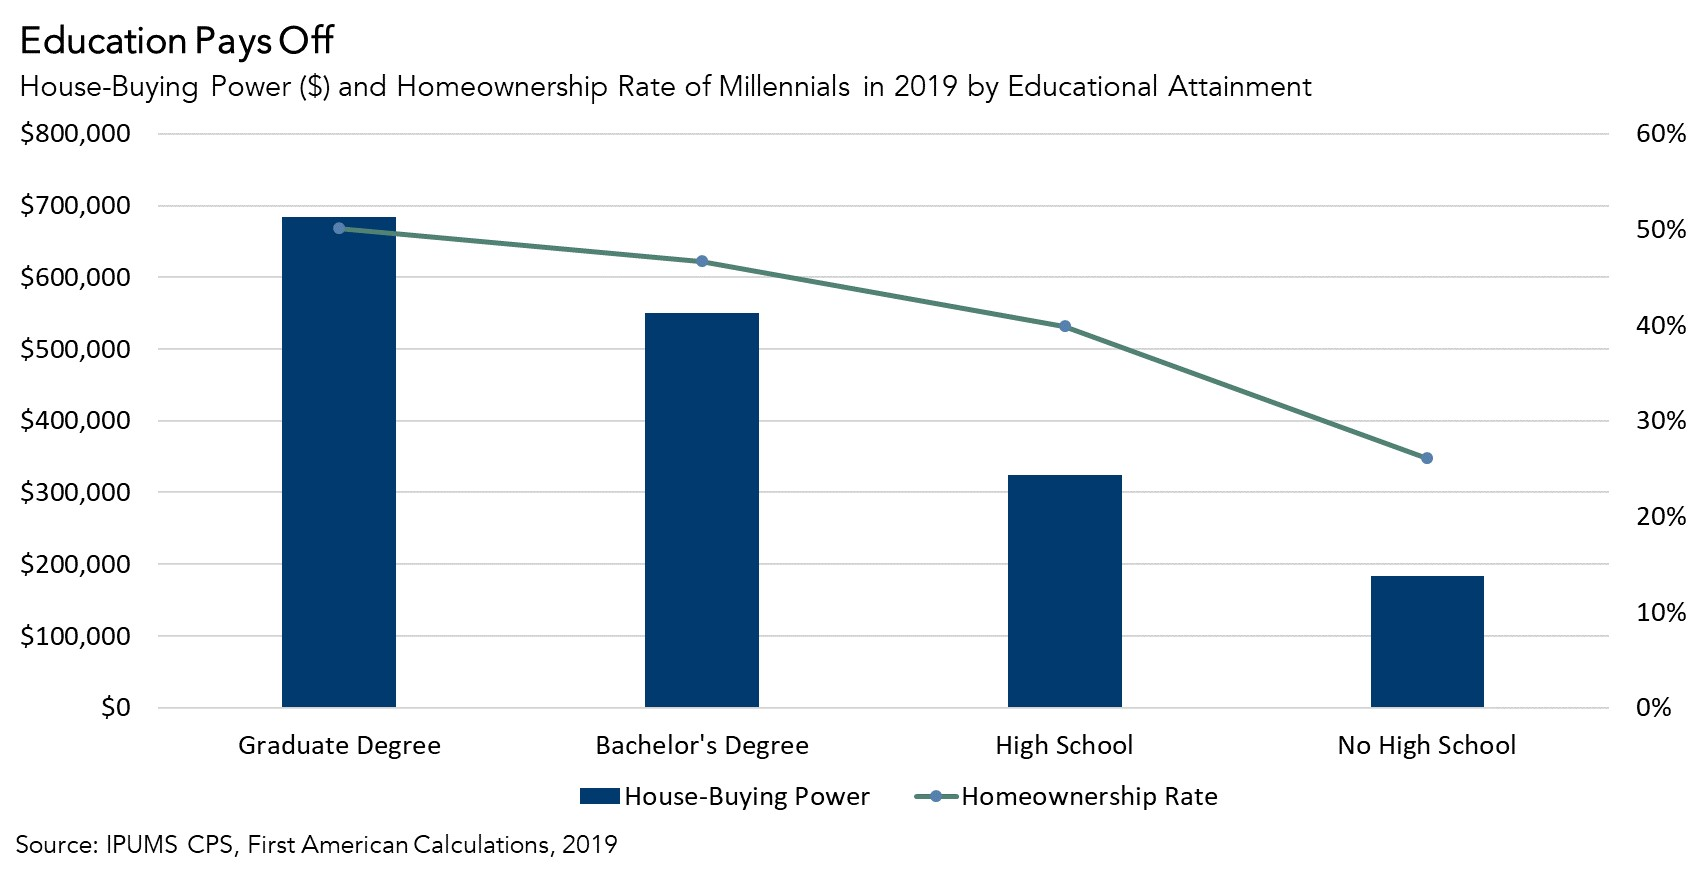 Education Pays Off Chart - 2019